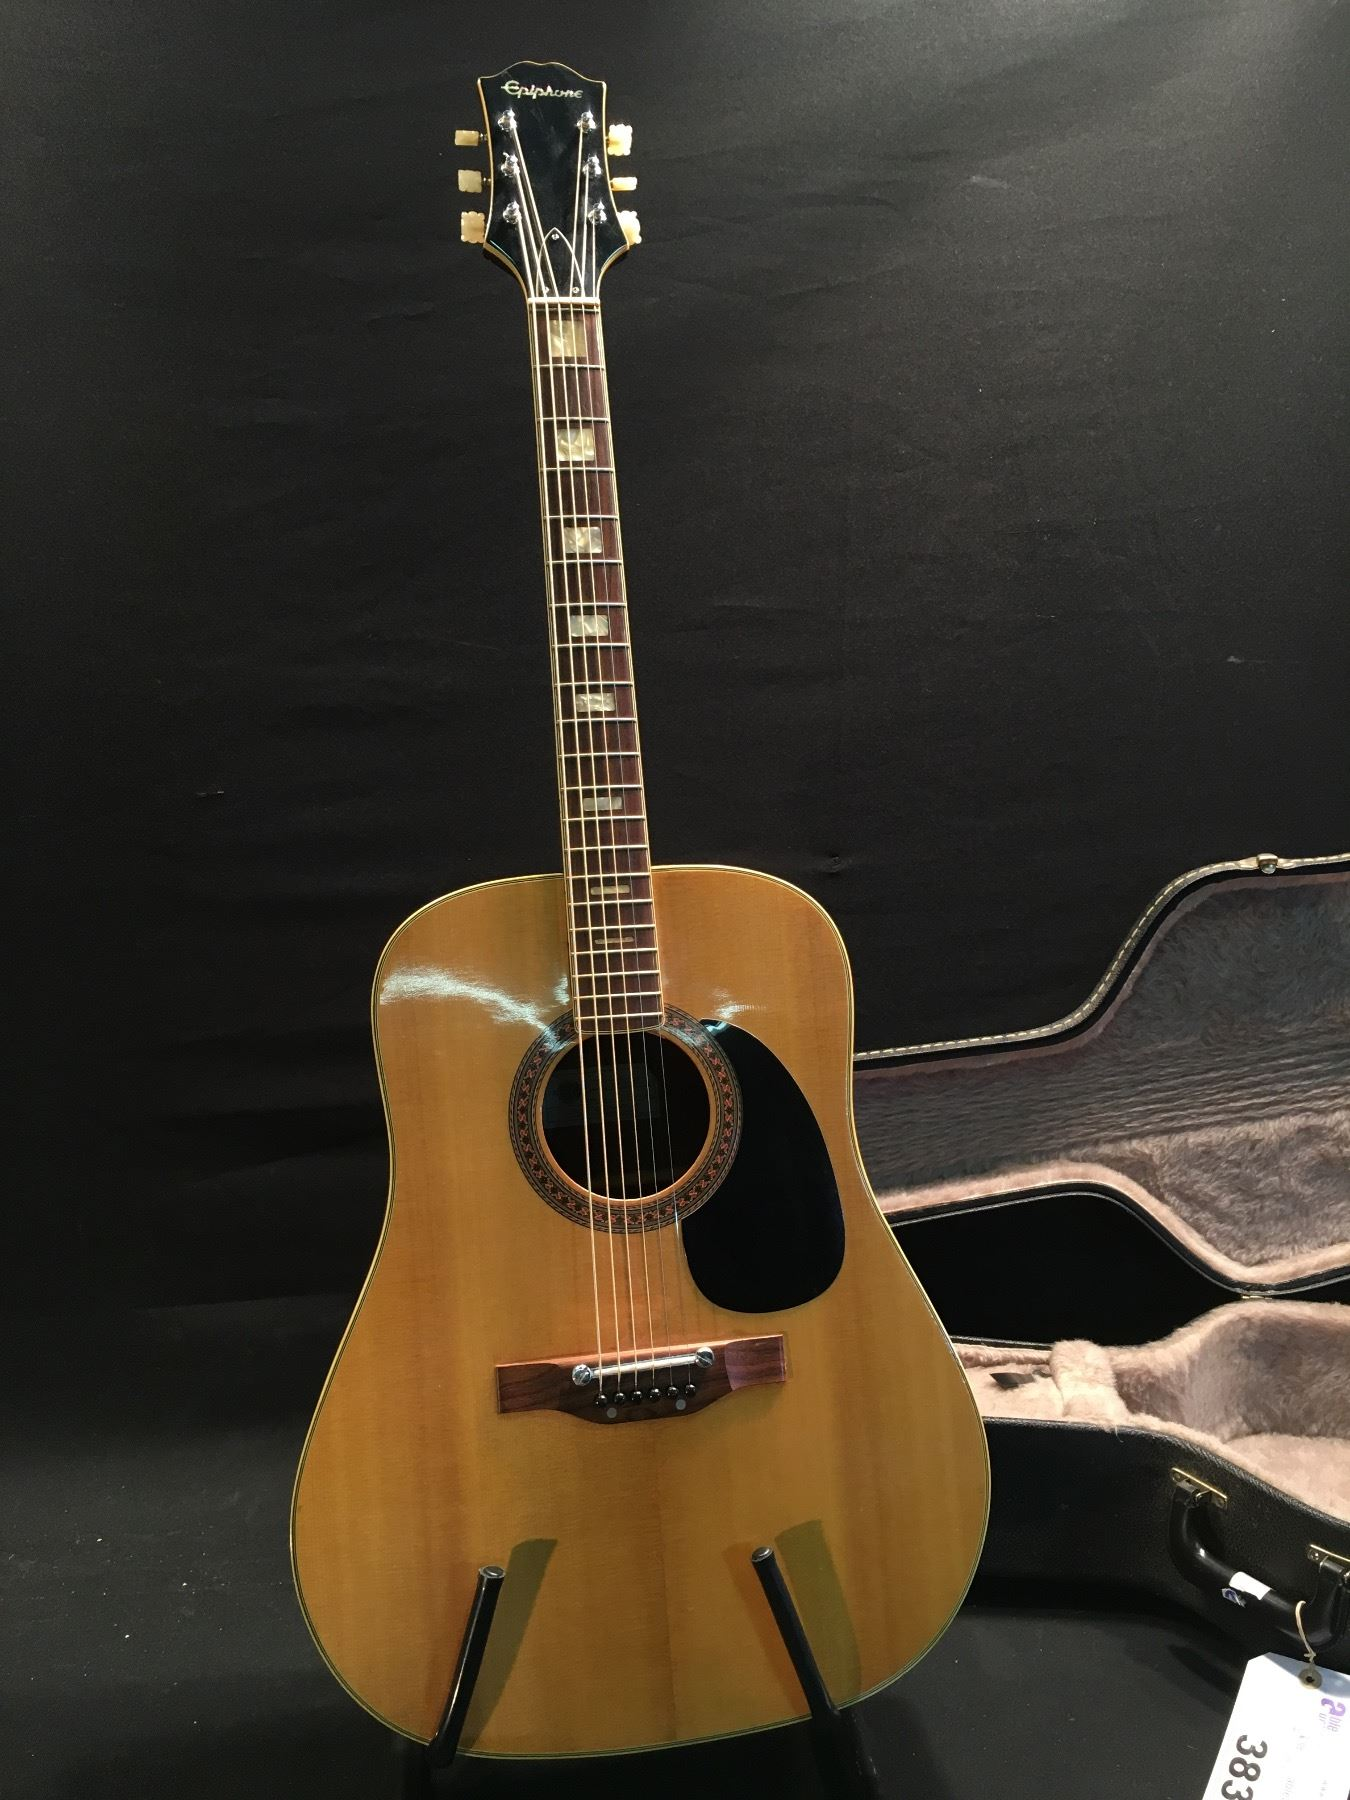 from Grady dating guitars